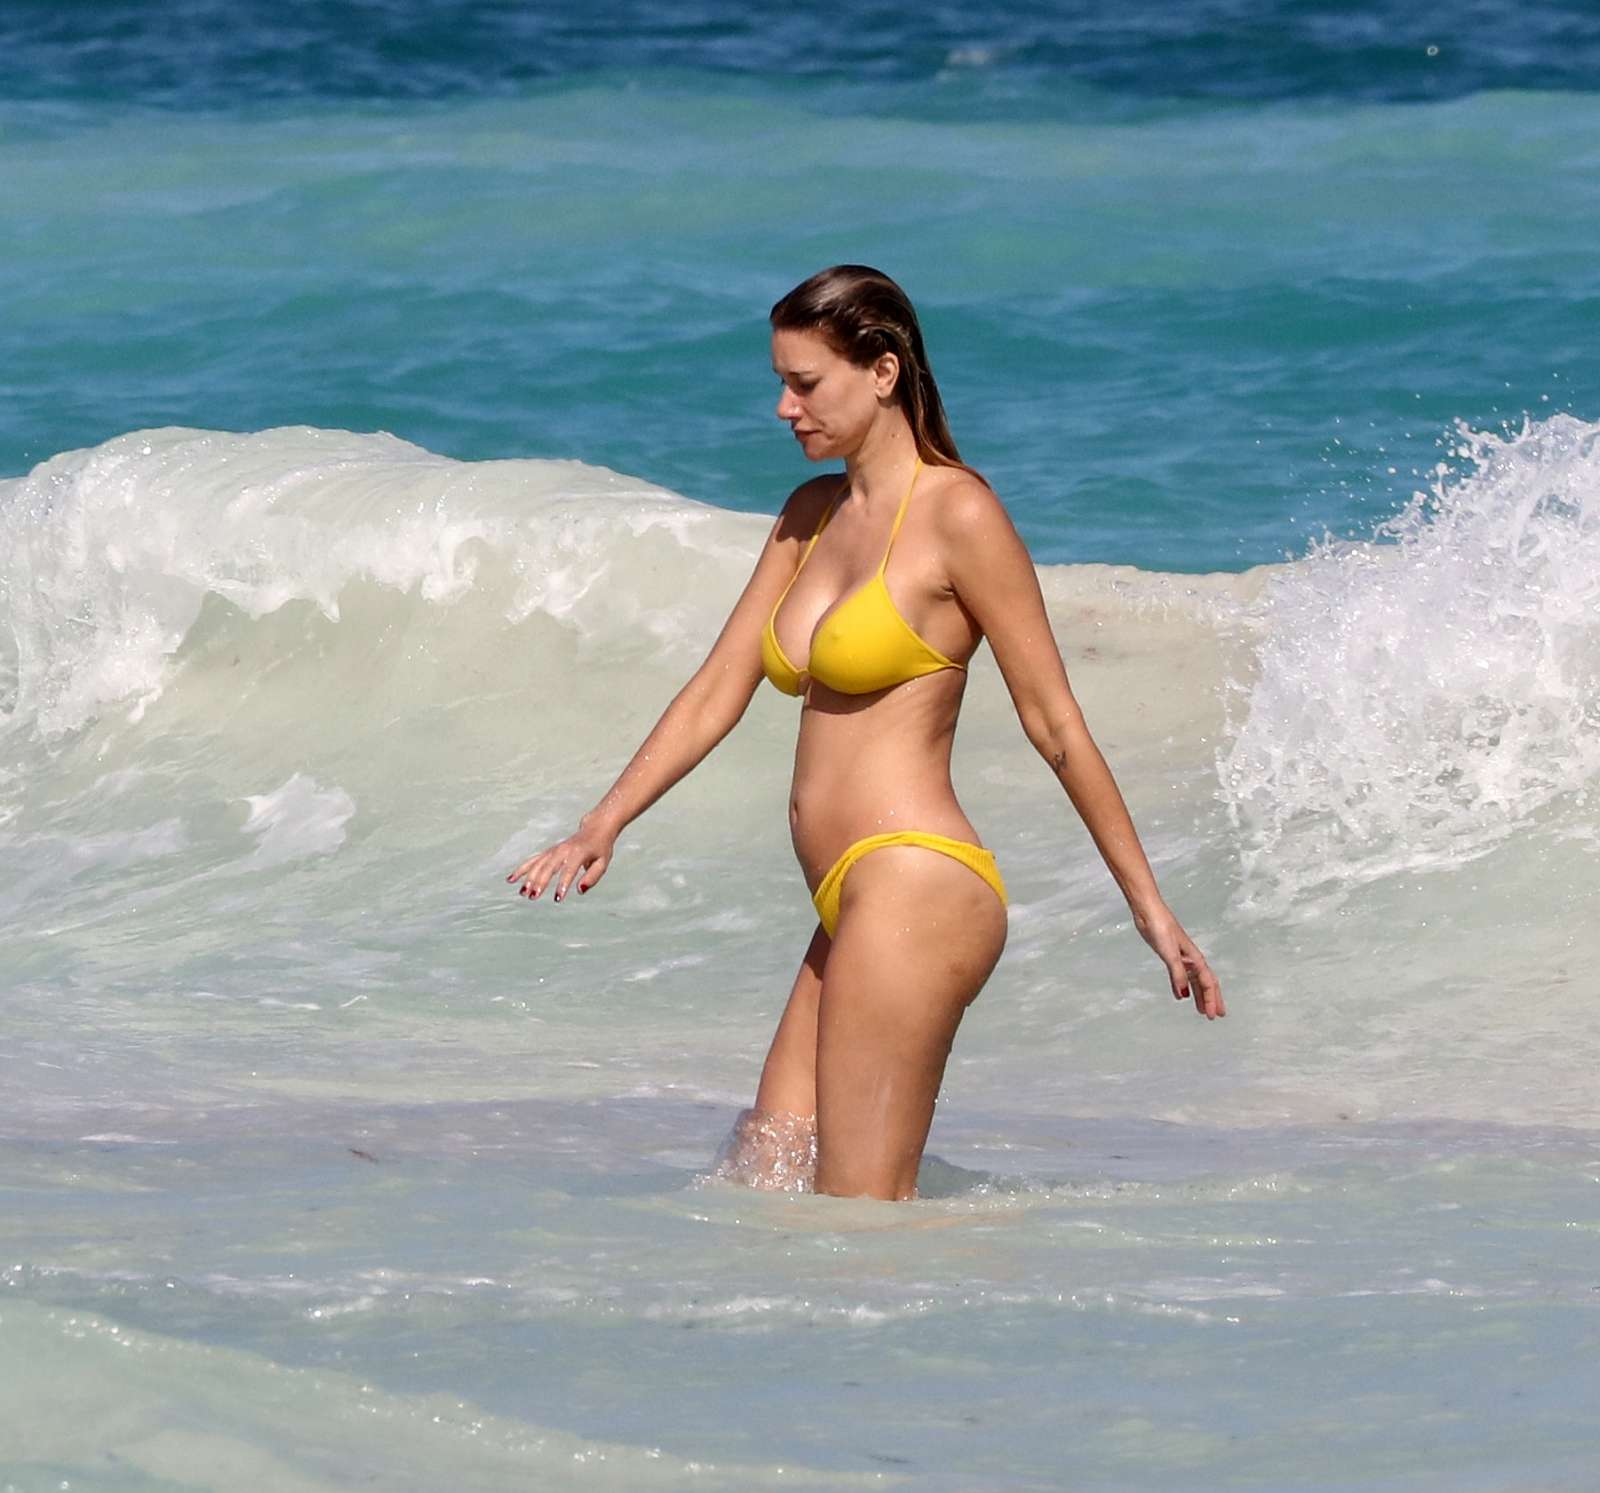 Susan Holms in Yellow Bikini on the beach in Tulum